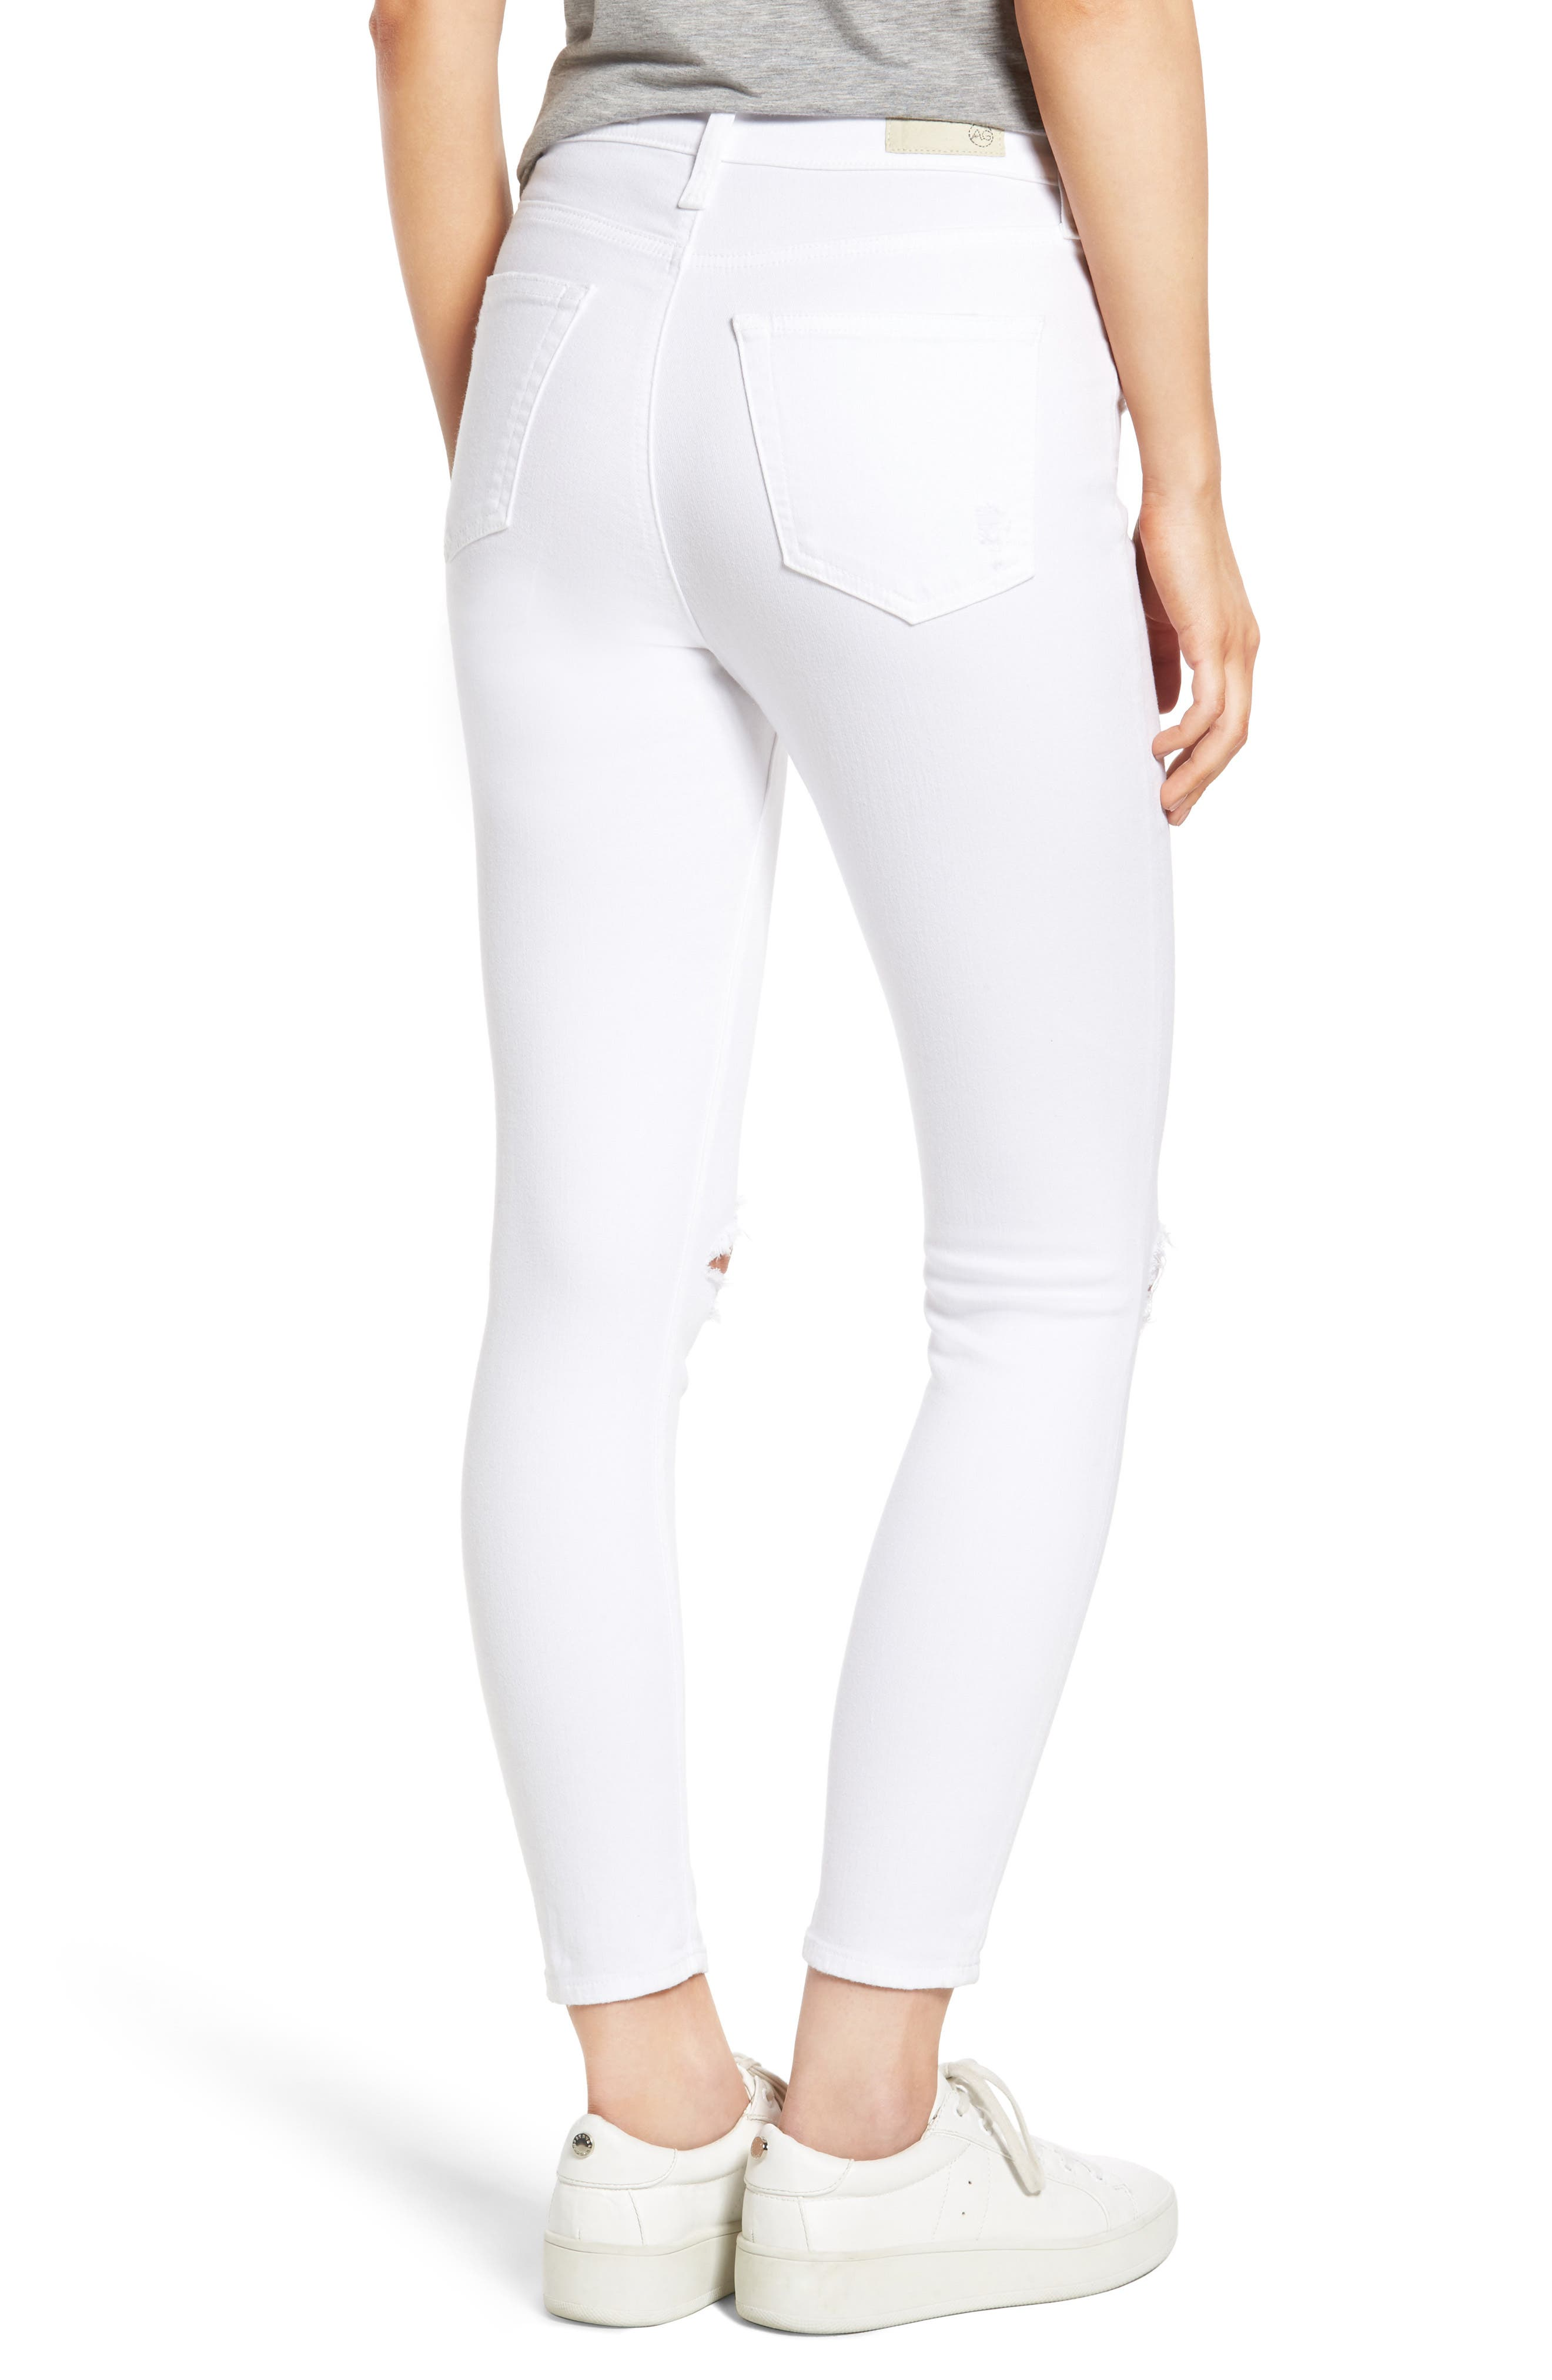 Mila Ripped High Waist Ankle Skinny Jeans,                             Alternate thumbnail 2, color,                             104